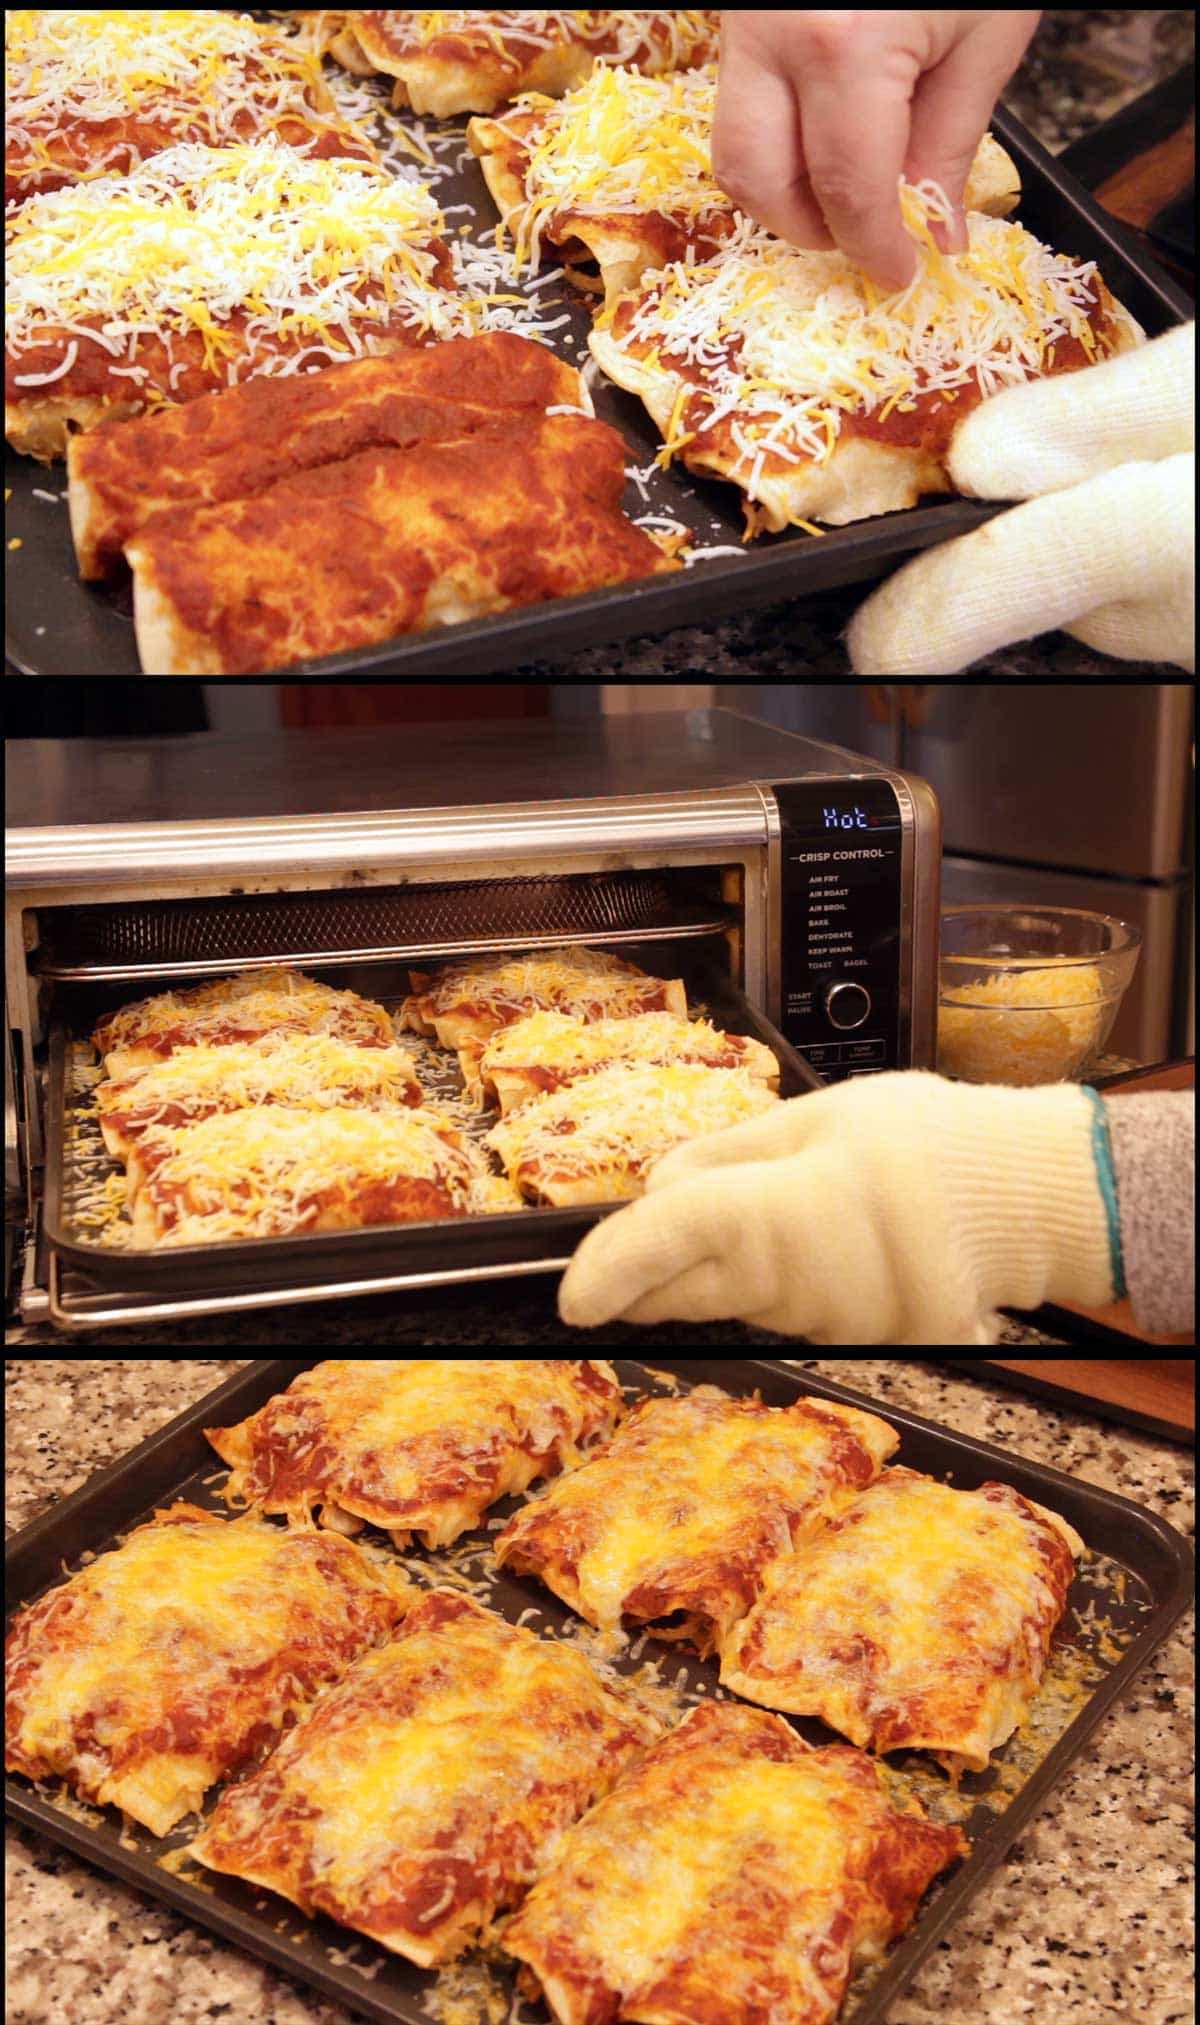 Adding cheese to enchiladas and broiling them